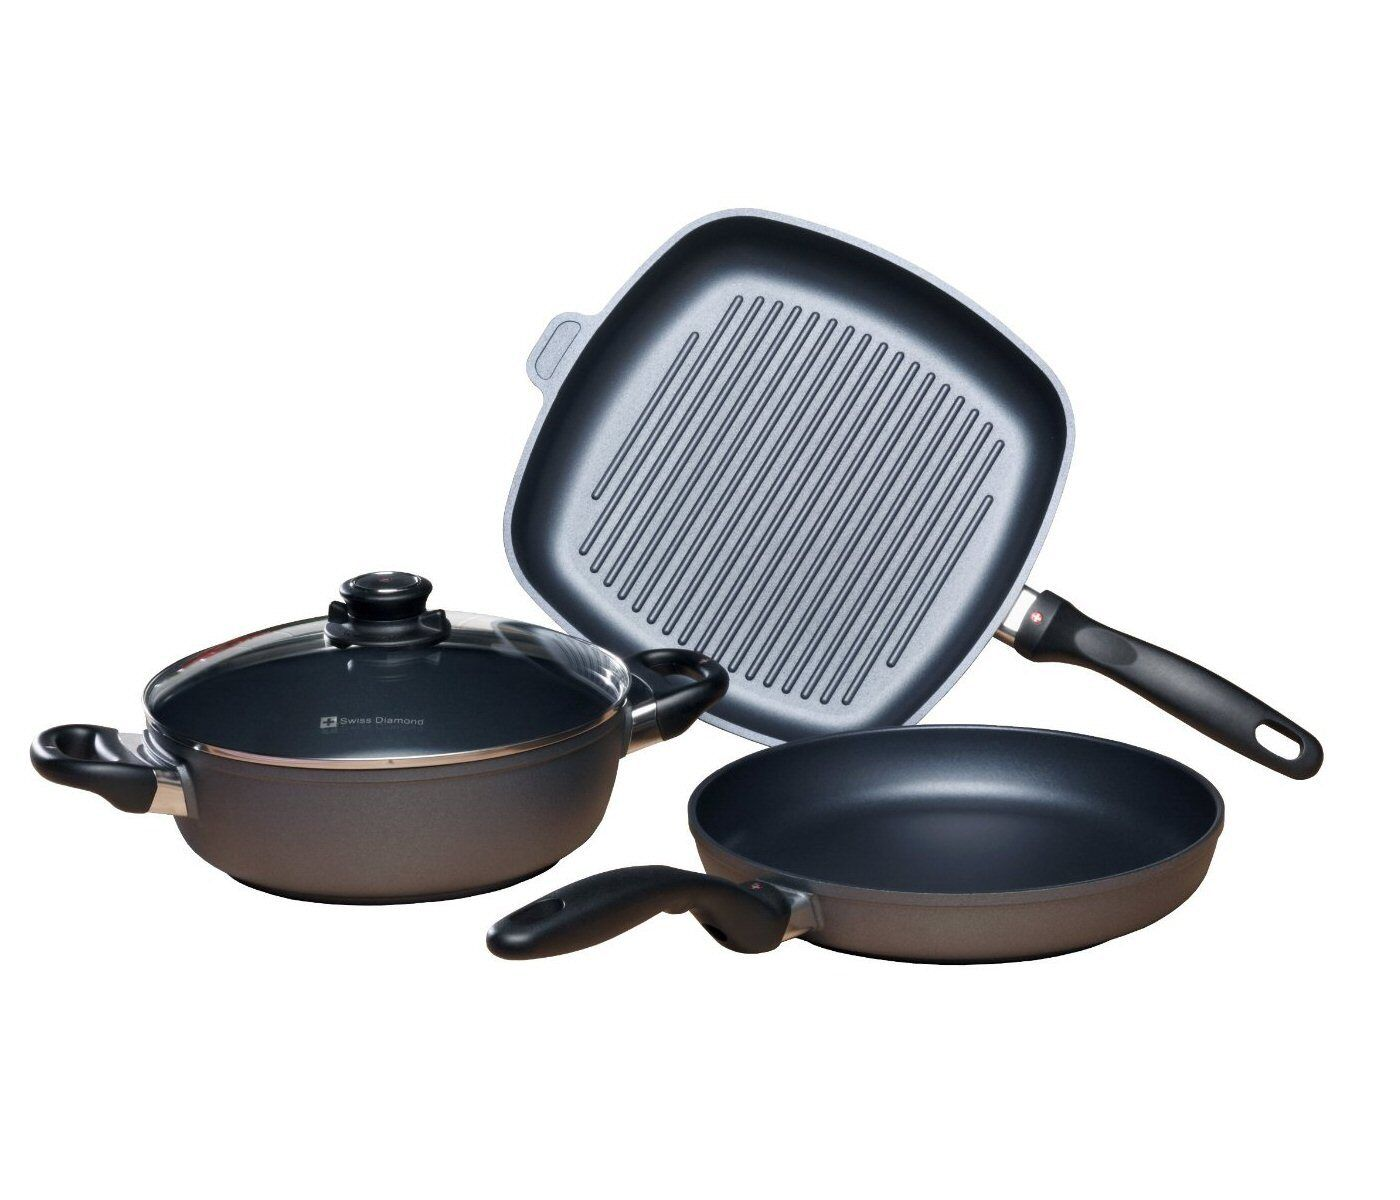 Swiss Diamond 4pc sartén, Cazuela & Grill Pan Cookware Set